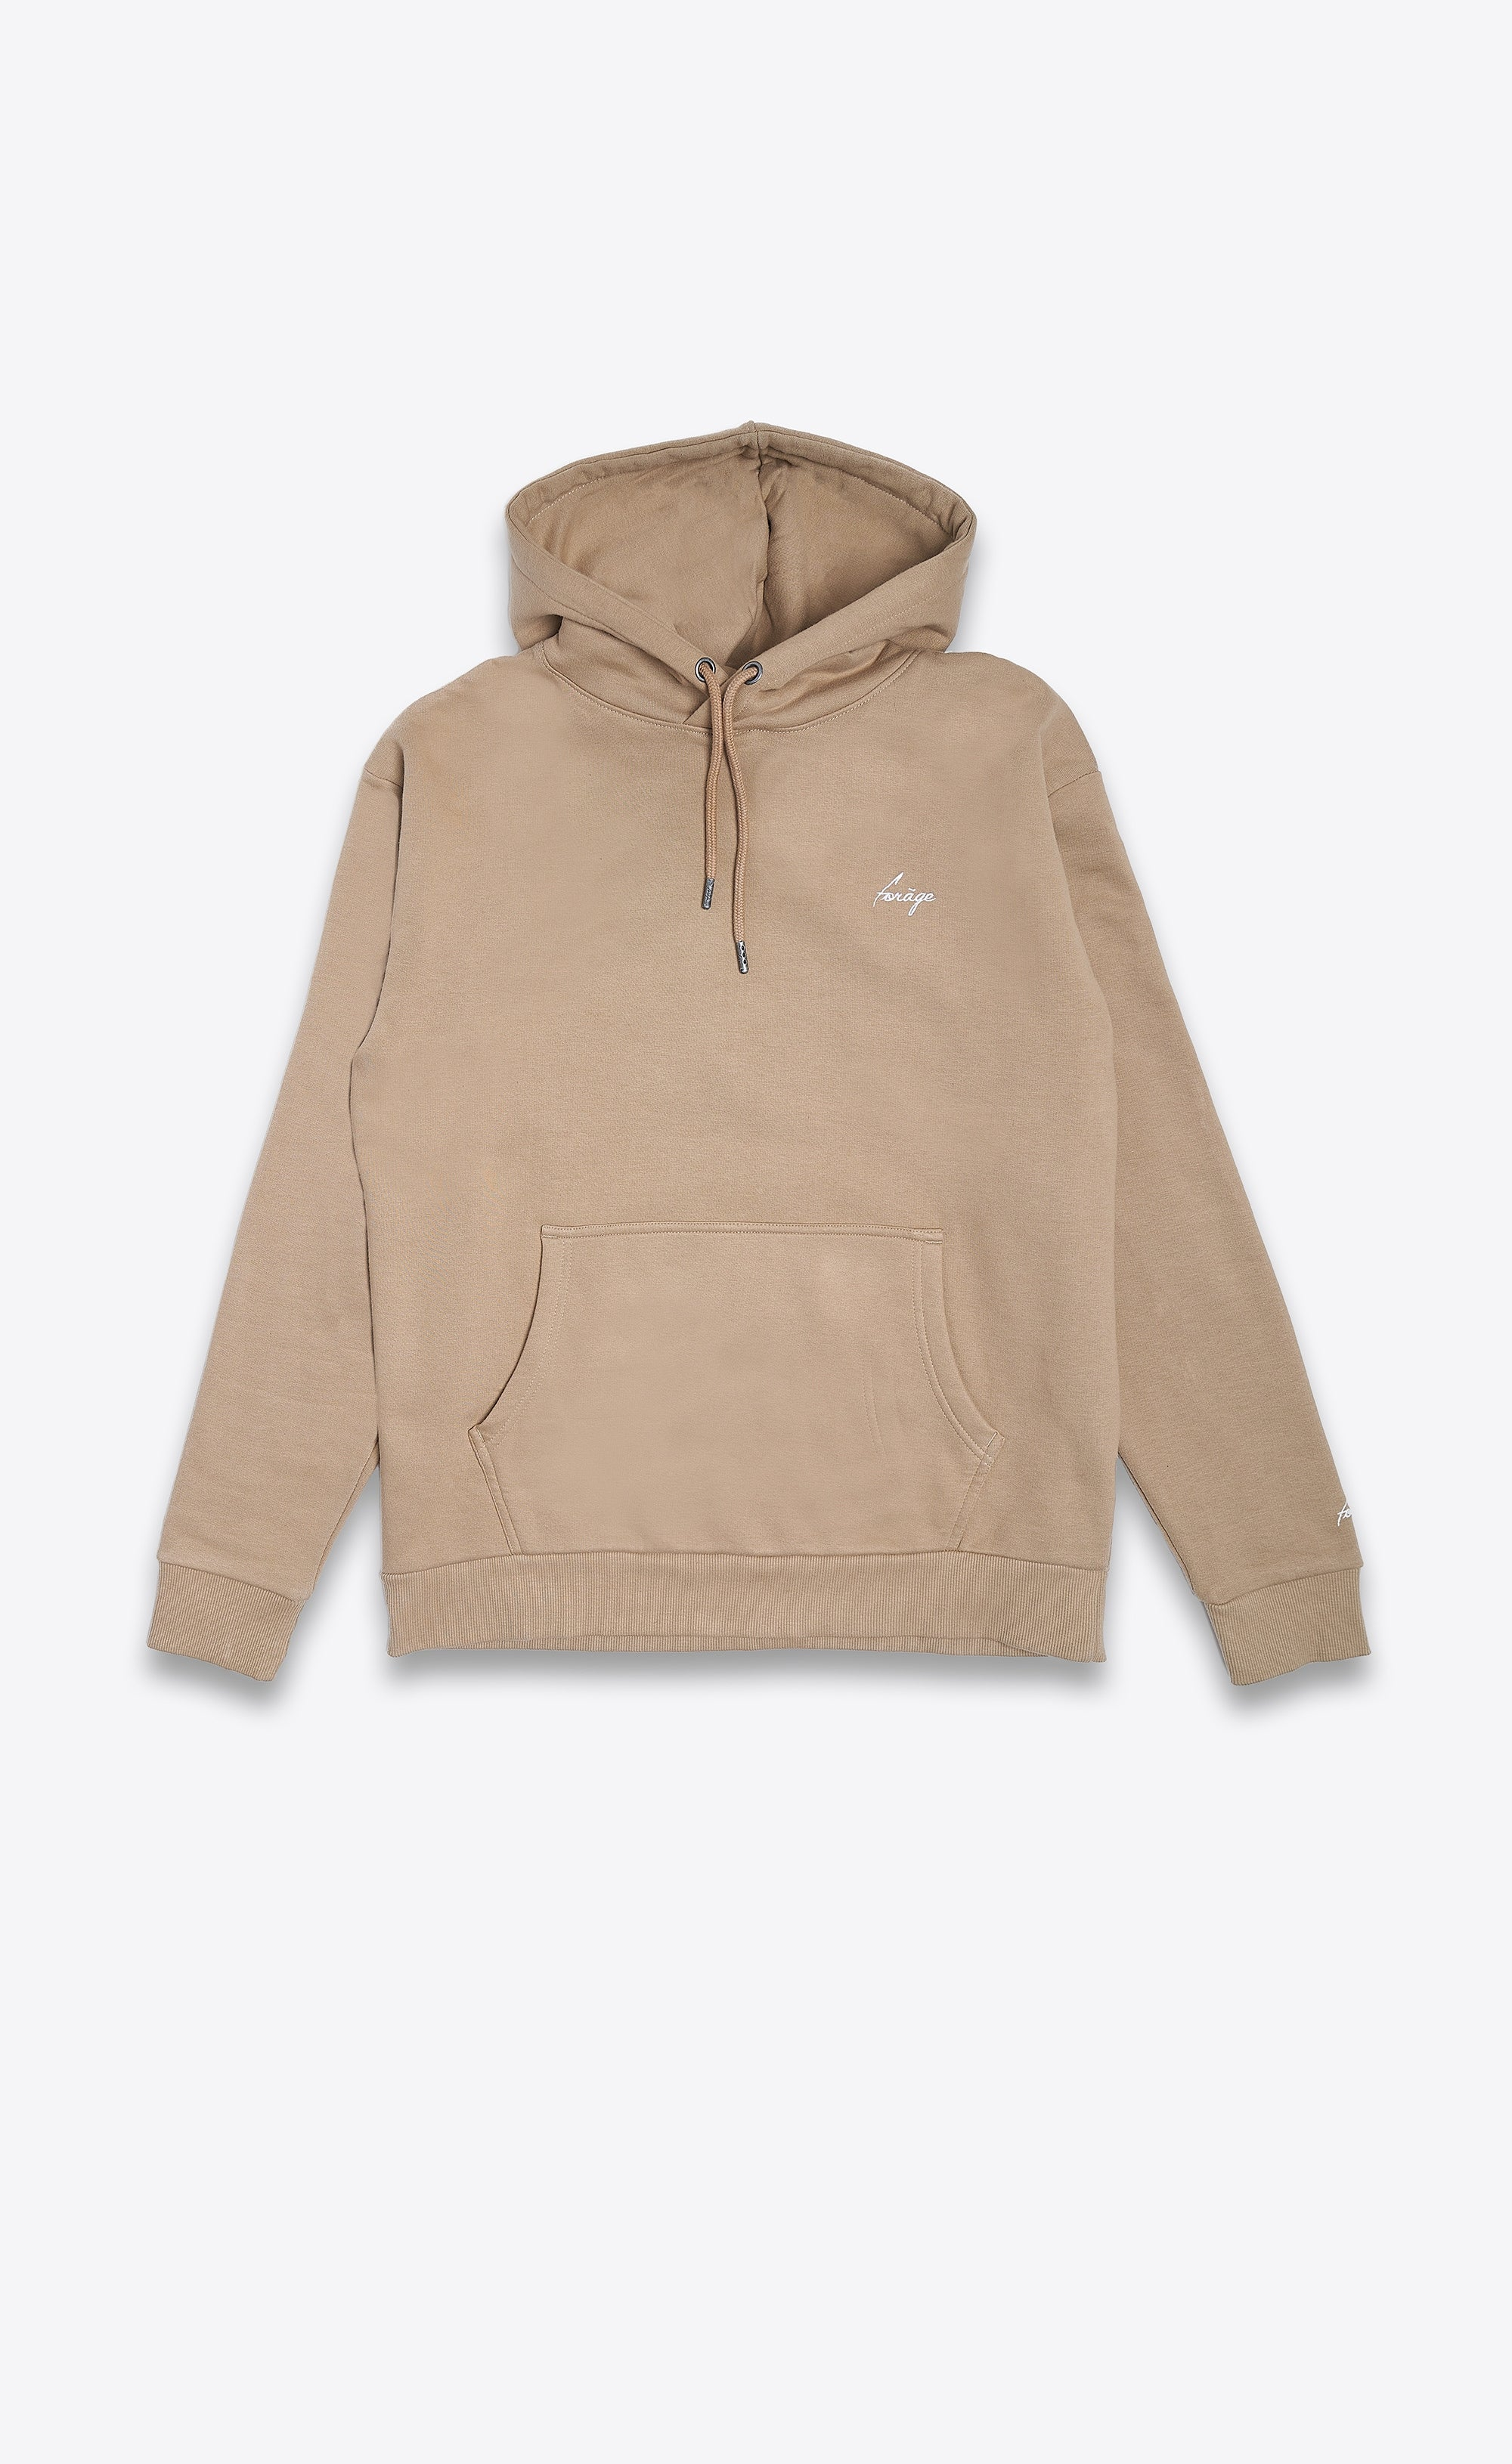 FORAGE LOGO HOODIE - CAMEL - Forage-Clothing